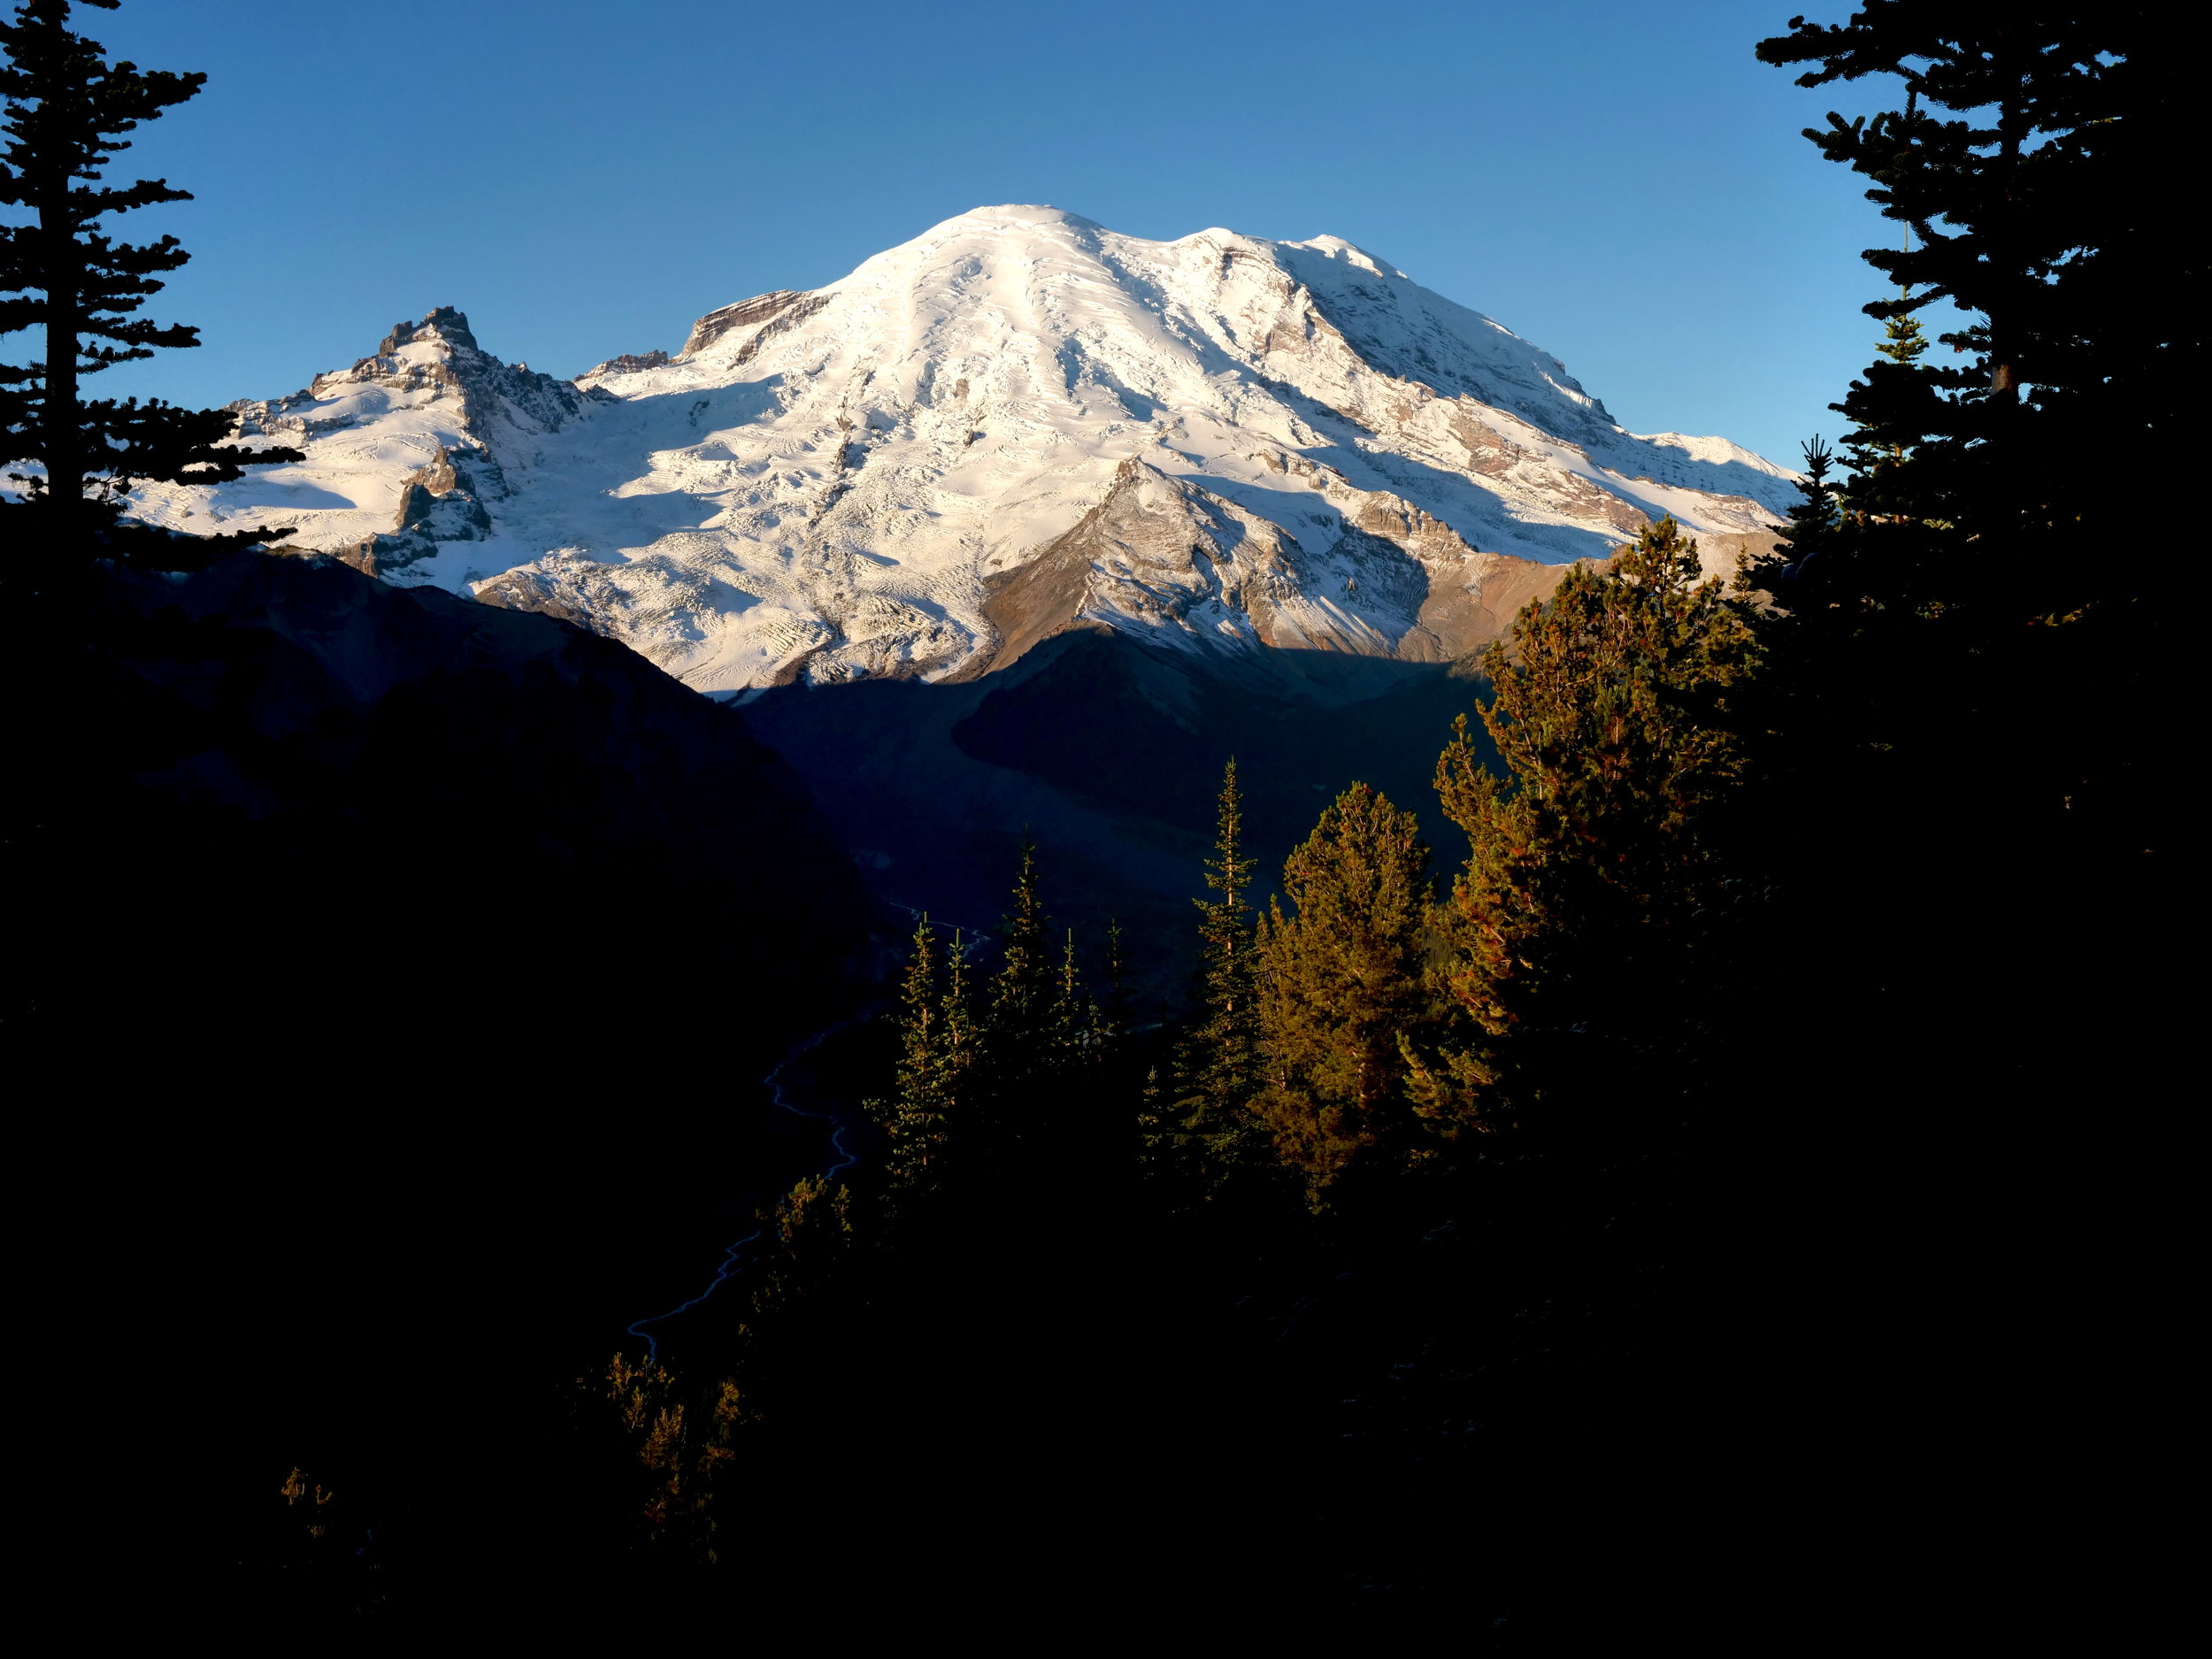 Mt. Rainier from the Silver Forest Trail, Sunrise